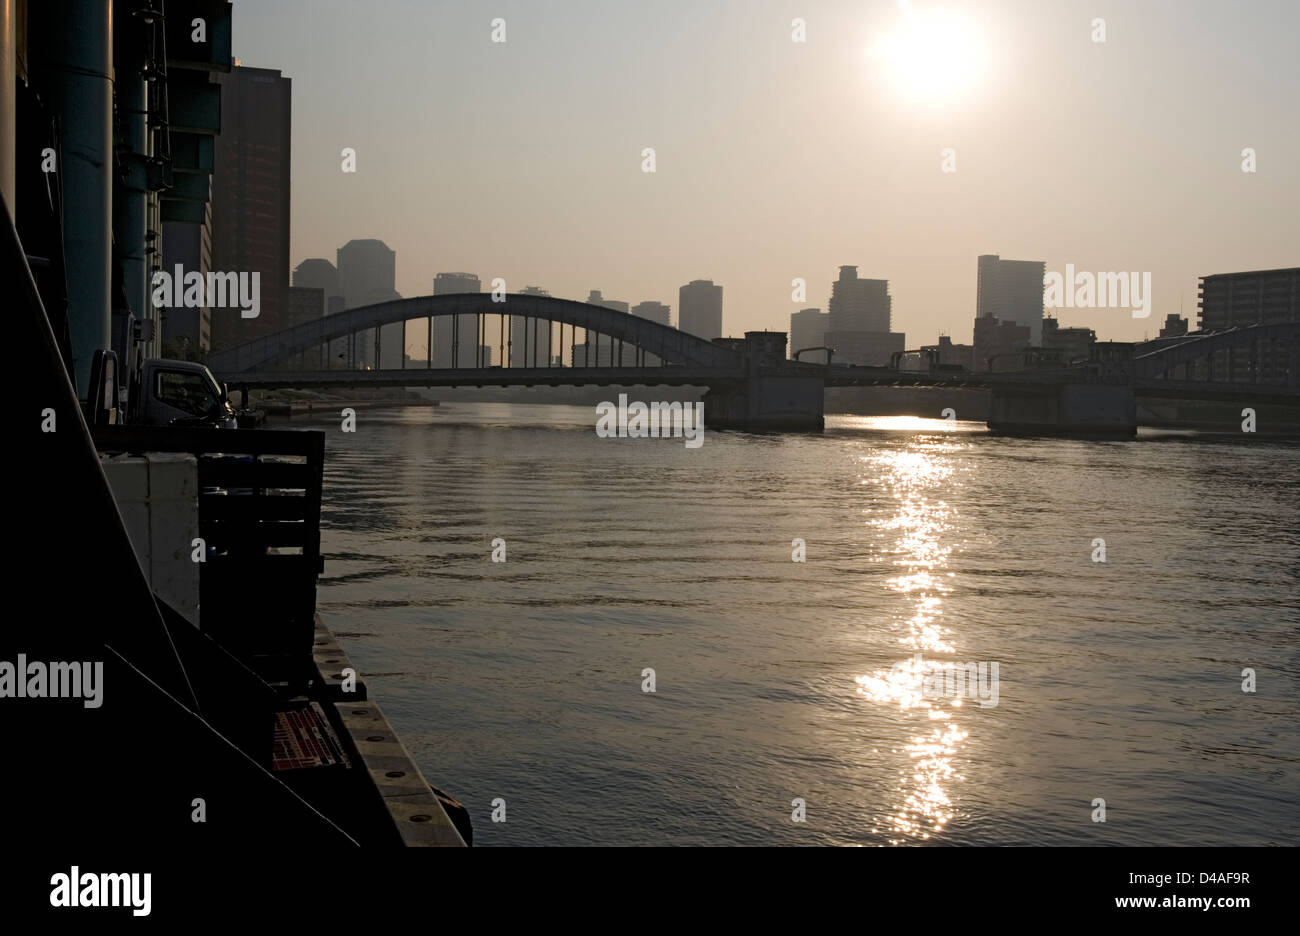 Early morning sunrise over the Sumidagawa (Sumida River) in the heart of downtown Tokyo. - Stock Image